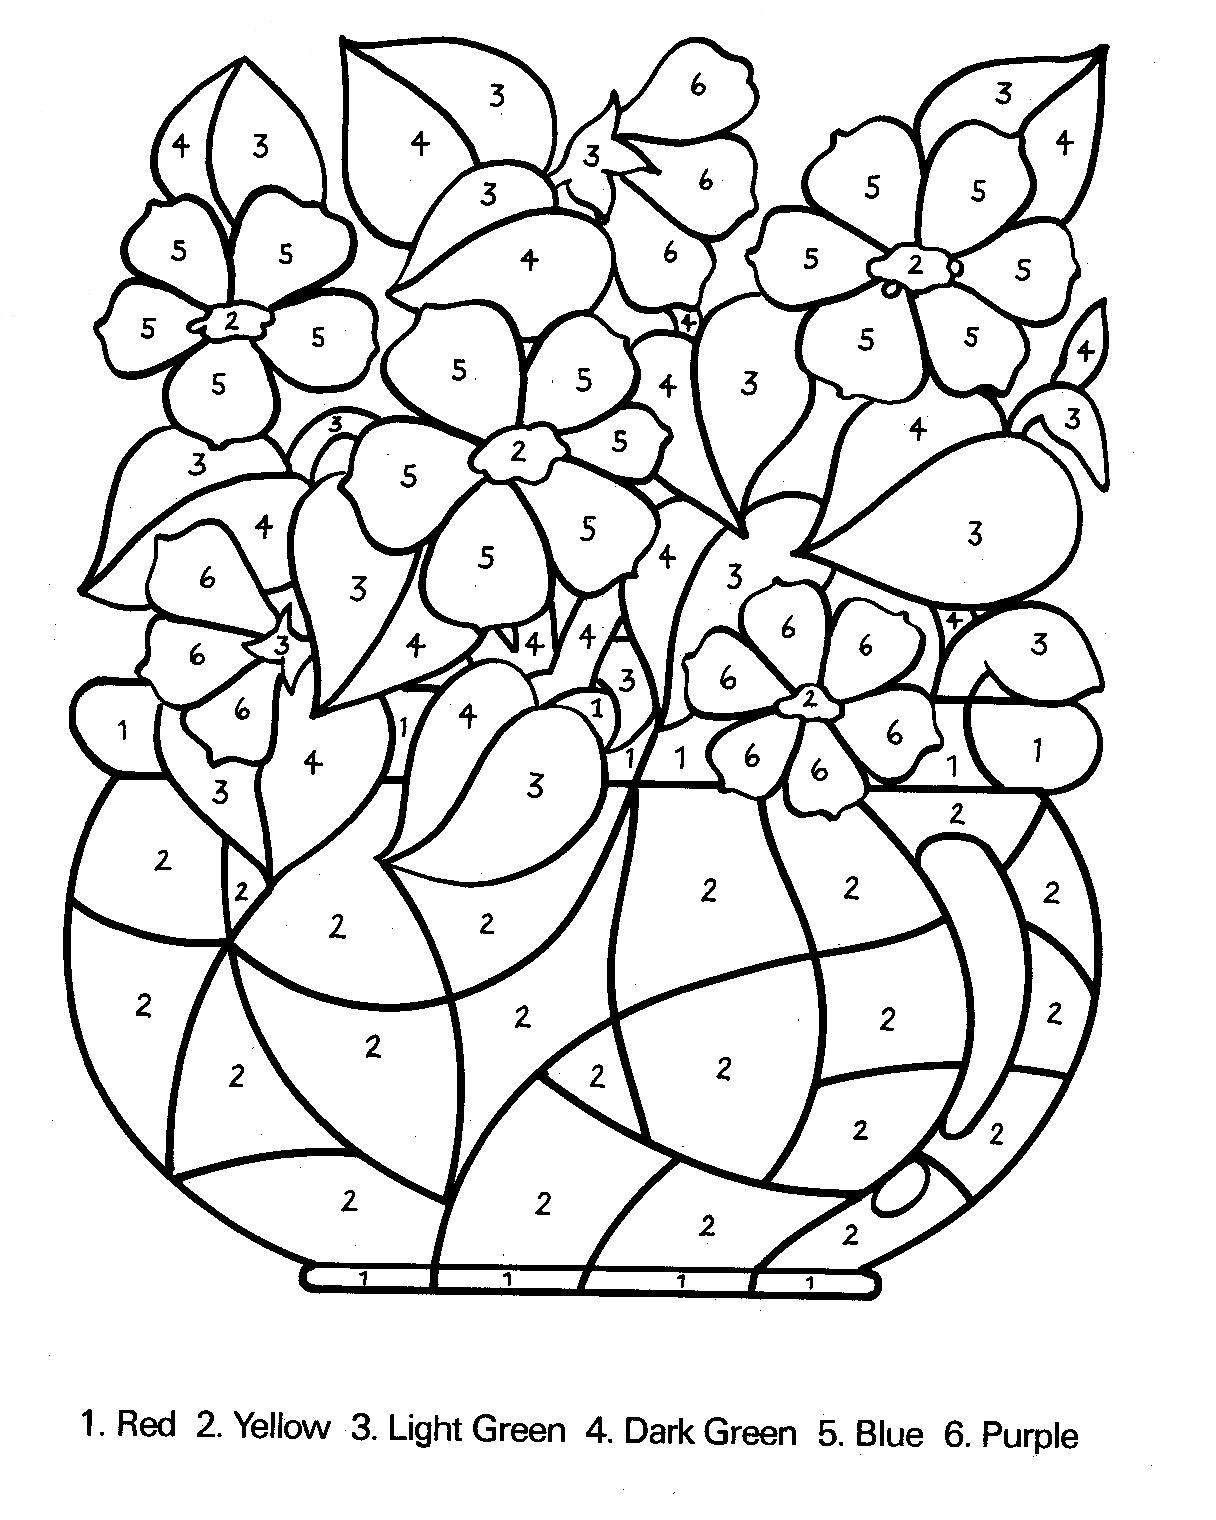 Colouring in sheets of flowers - Number Flowers Coloring Sheets Digg Stumbleupon Del Icio Us Twitter Technorati